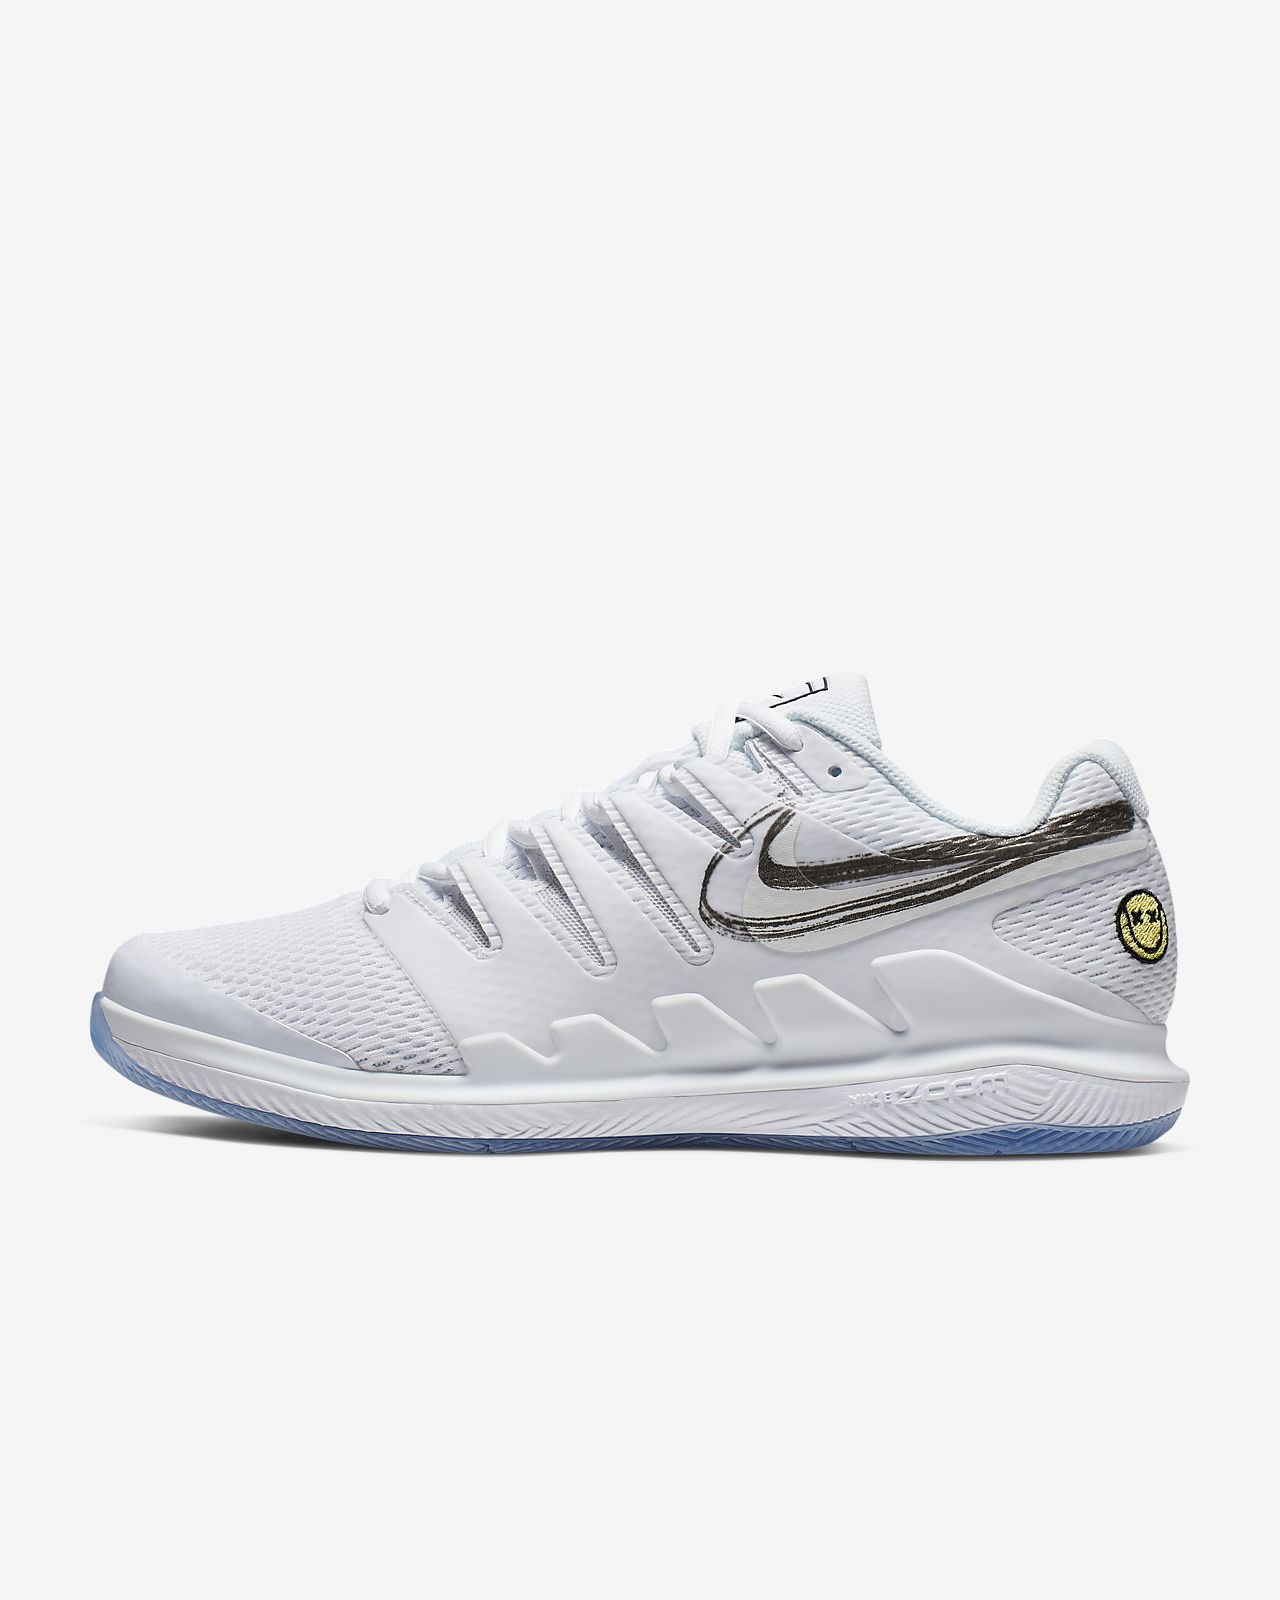 NikeCourt Air Zoom Vapor X Men's Hard Court Tennis Shoe